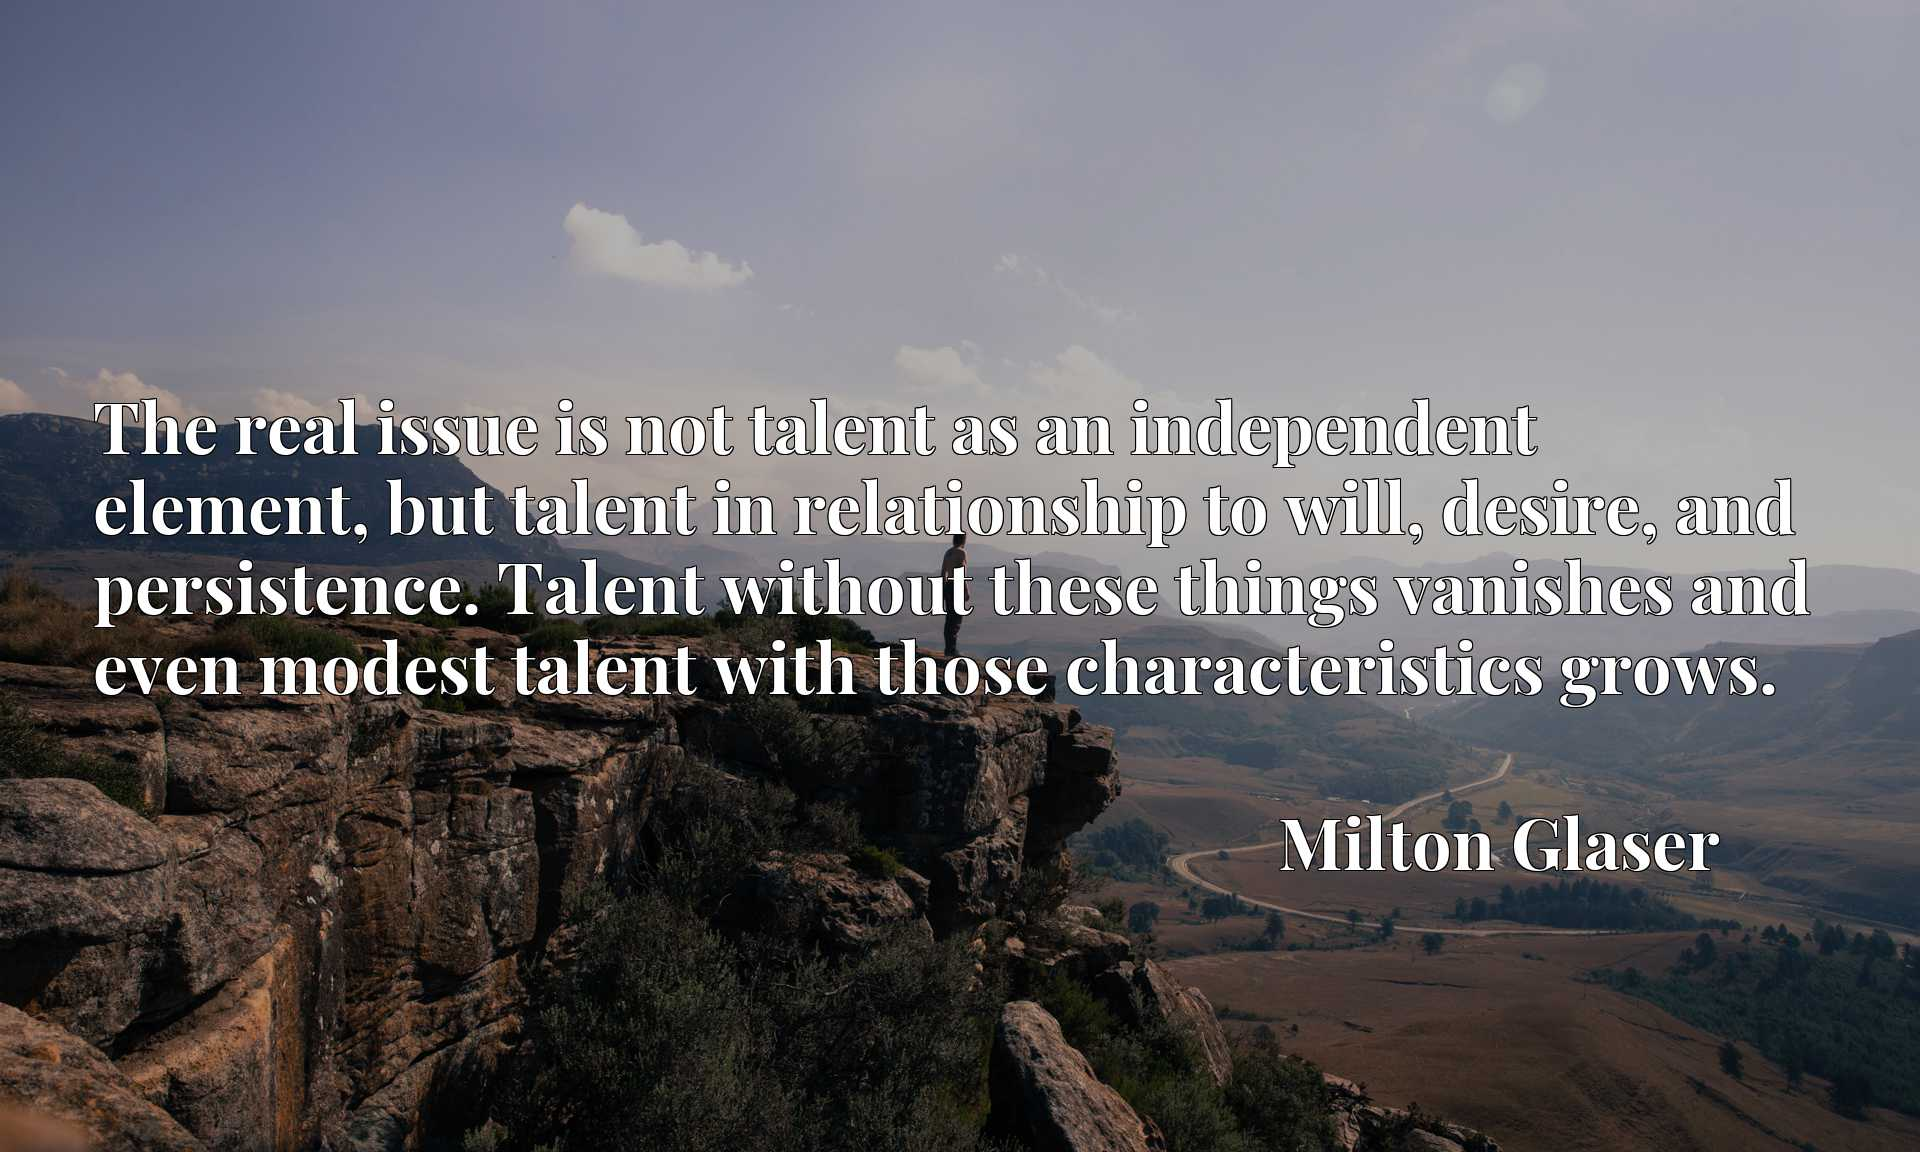 The real issue is not talent as an independent element, but talent in relationship to will, desire, and persistence. Talent without these things vanishes and even modest talent with those characteristics grows.